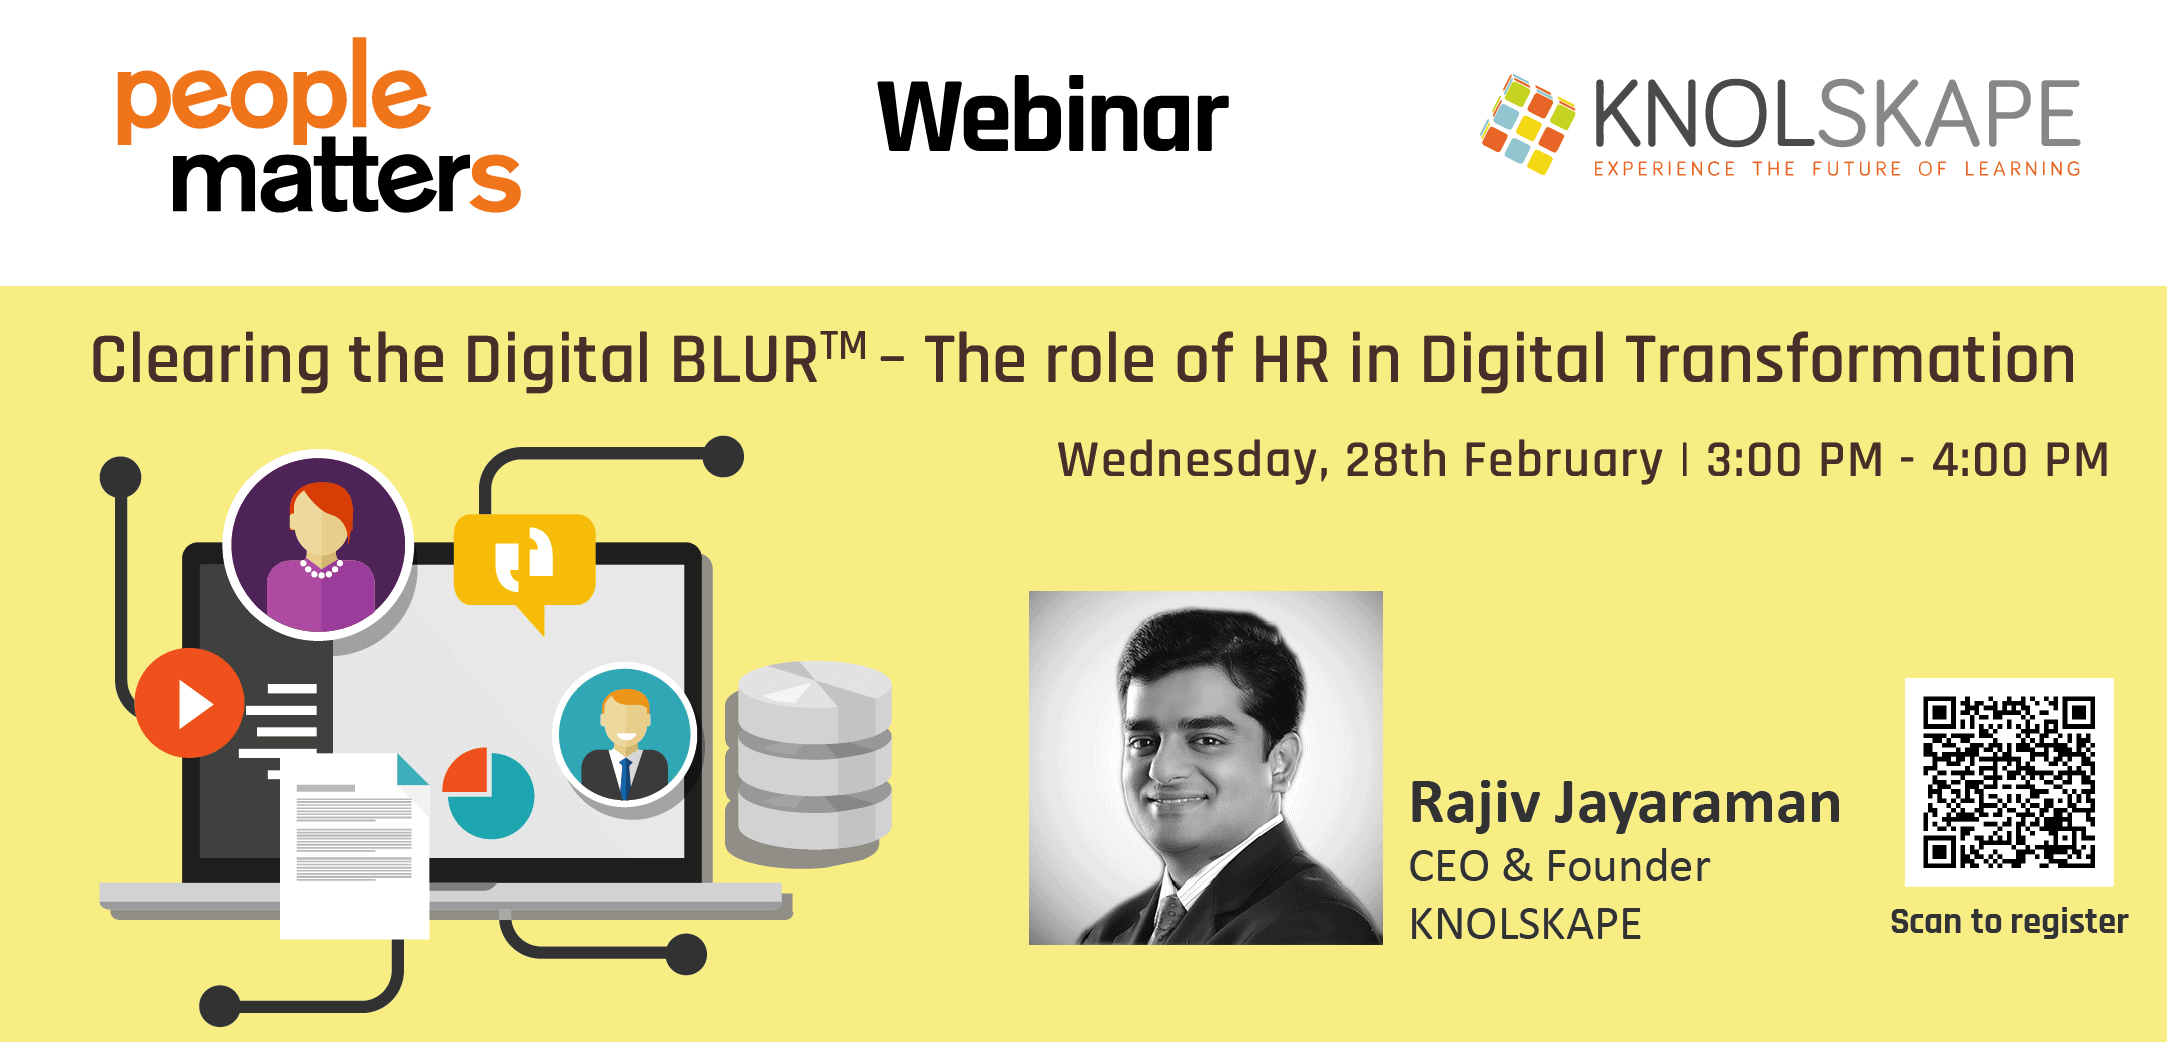 How can #HR make a difference in the age #DigitalTransformation? Find the answer to this challenging question in this webinar KNOLSKAPE is hosting in association with People Matters